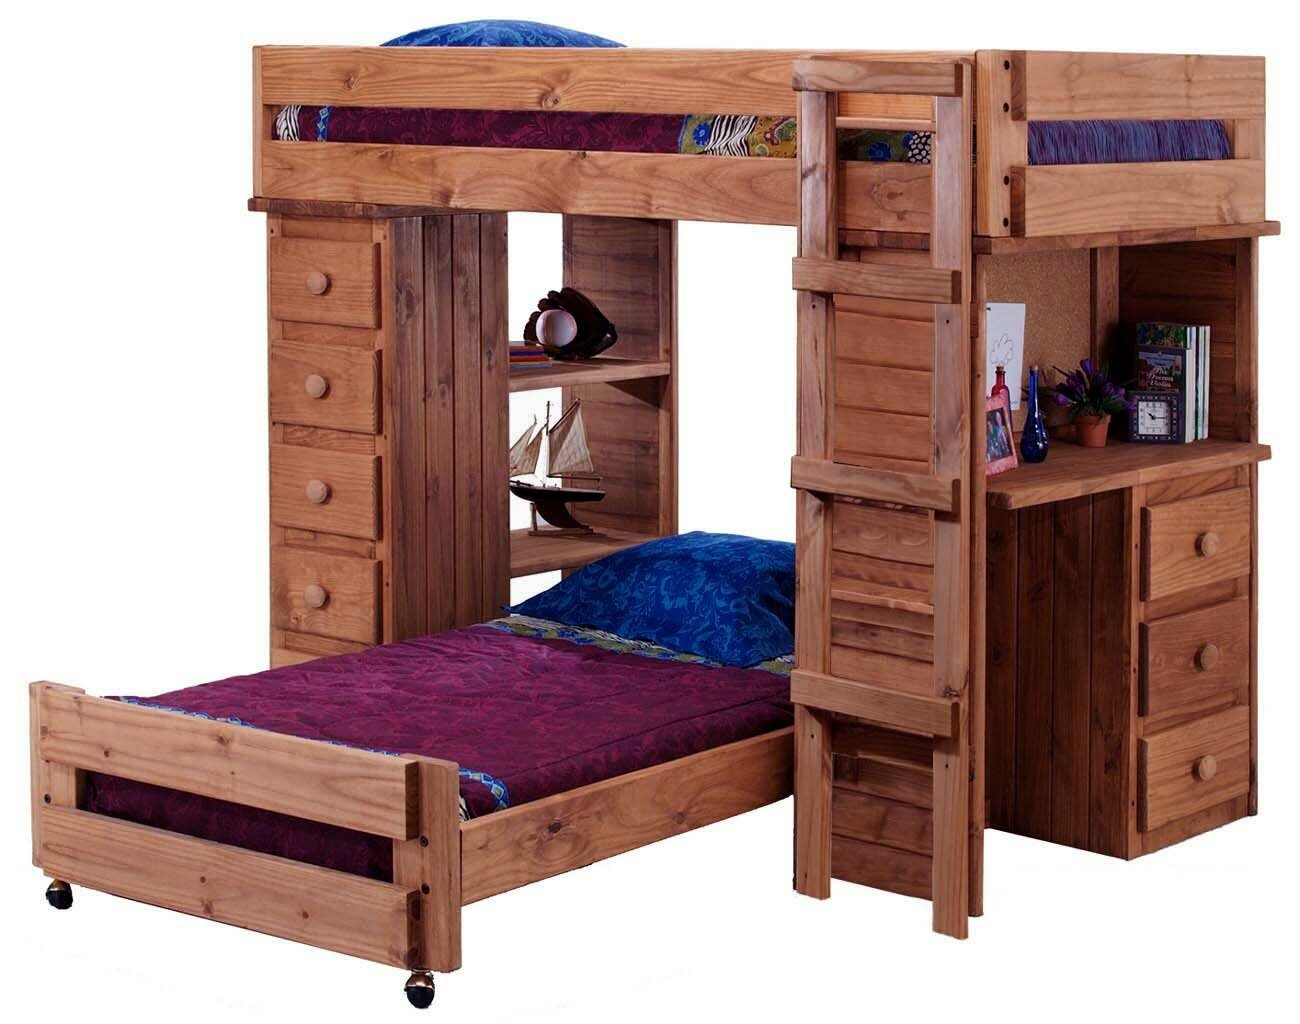 Picture of: Harriet Bee Chaves Student Twin Over Twin L Shaped Bunk Bed With Shelves And Drawers